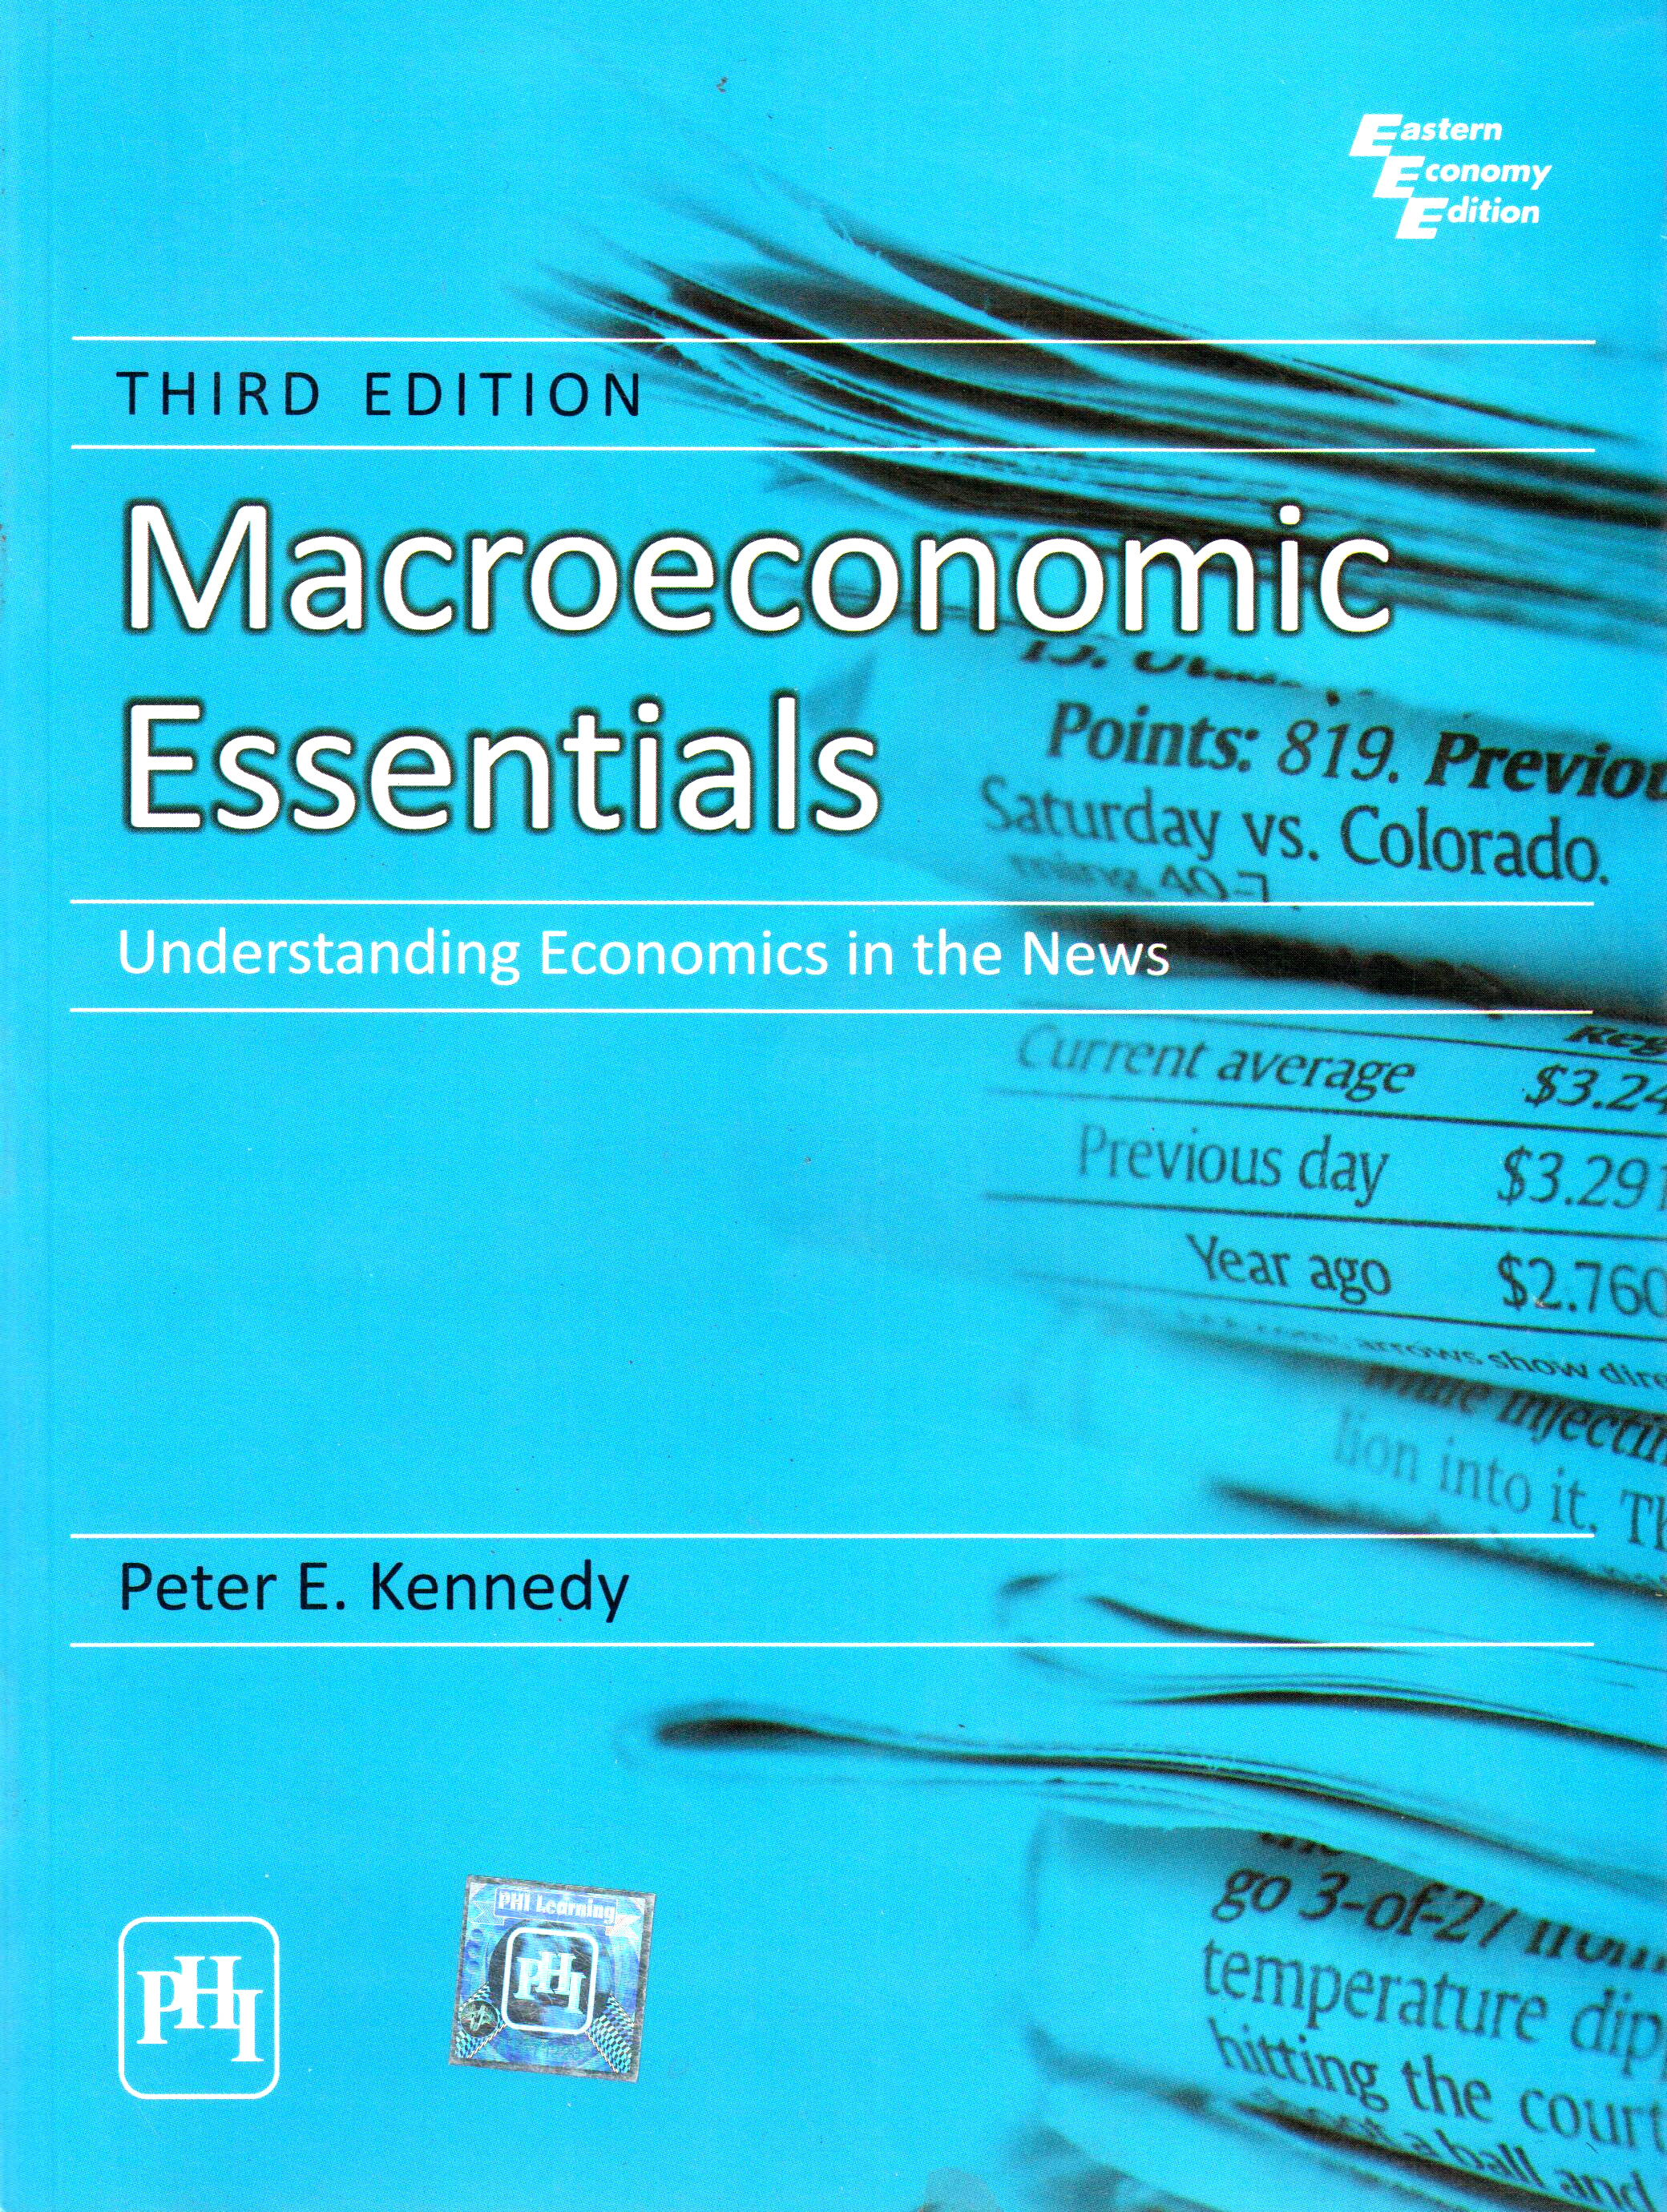 Macroeconomic Essentials: Understanding Economics In The News 3rd  Edition(English, Paperback, Peter E. Kennedy) Flipkart